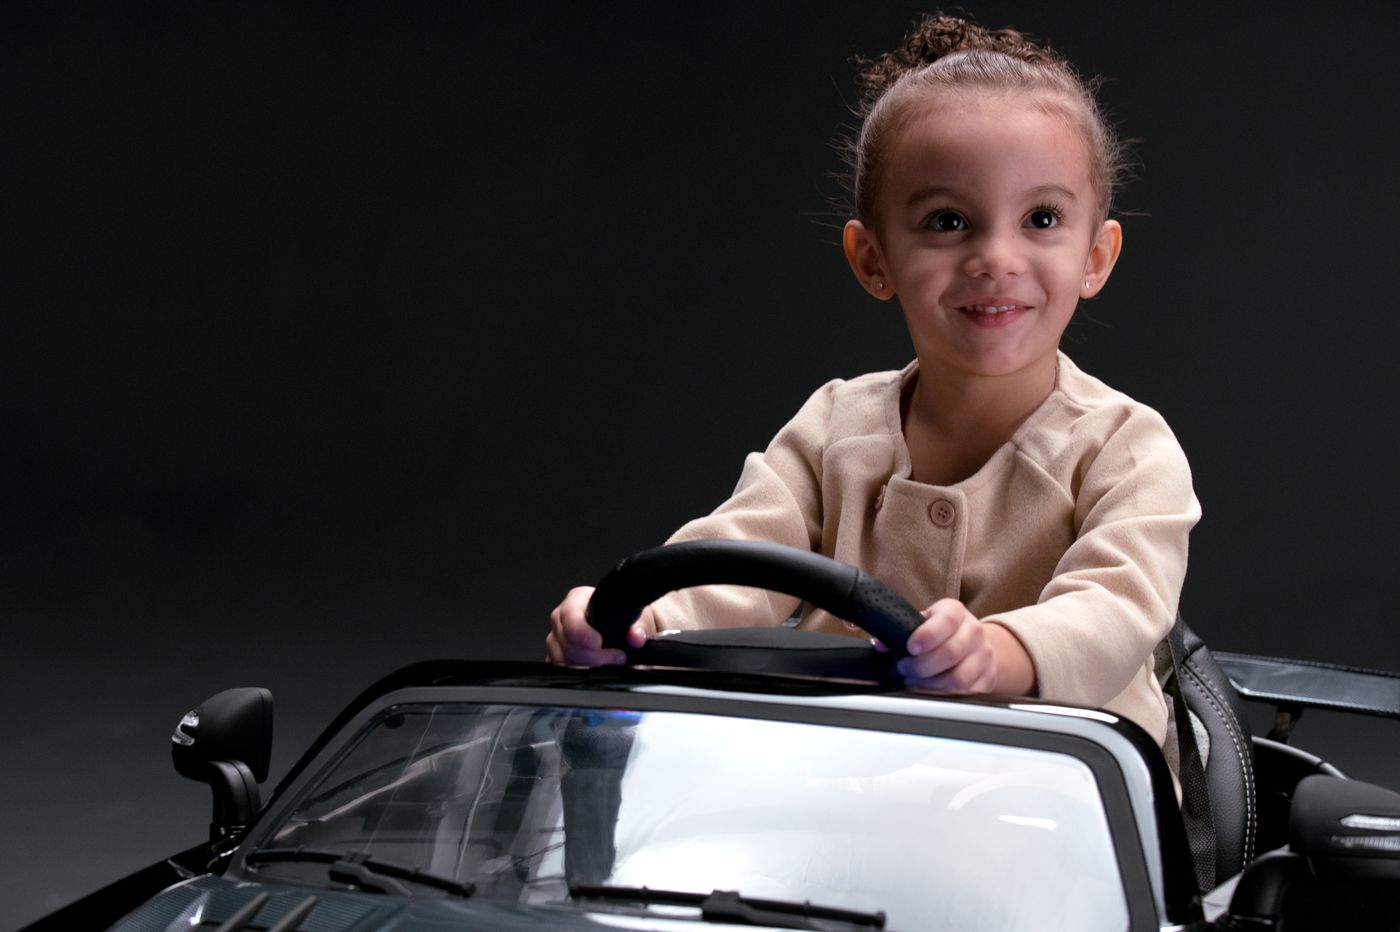 Mercedes-Benz USA will open a one day only pop up at the King of Prussia Mall for kids